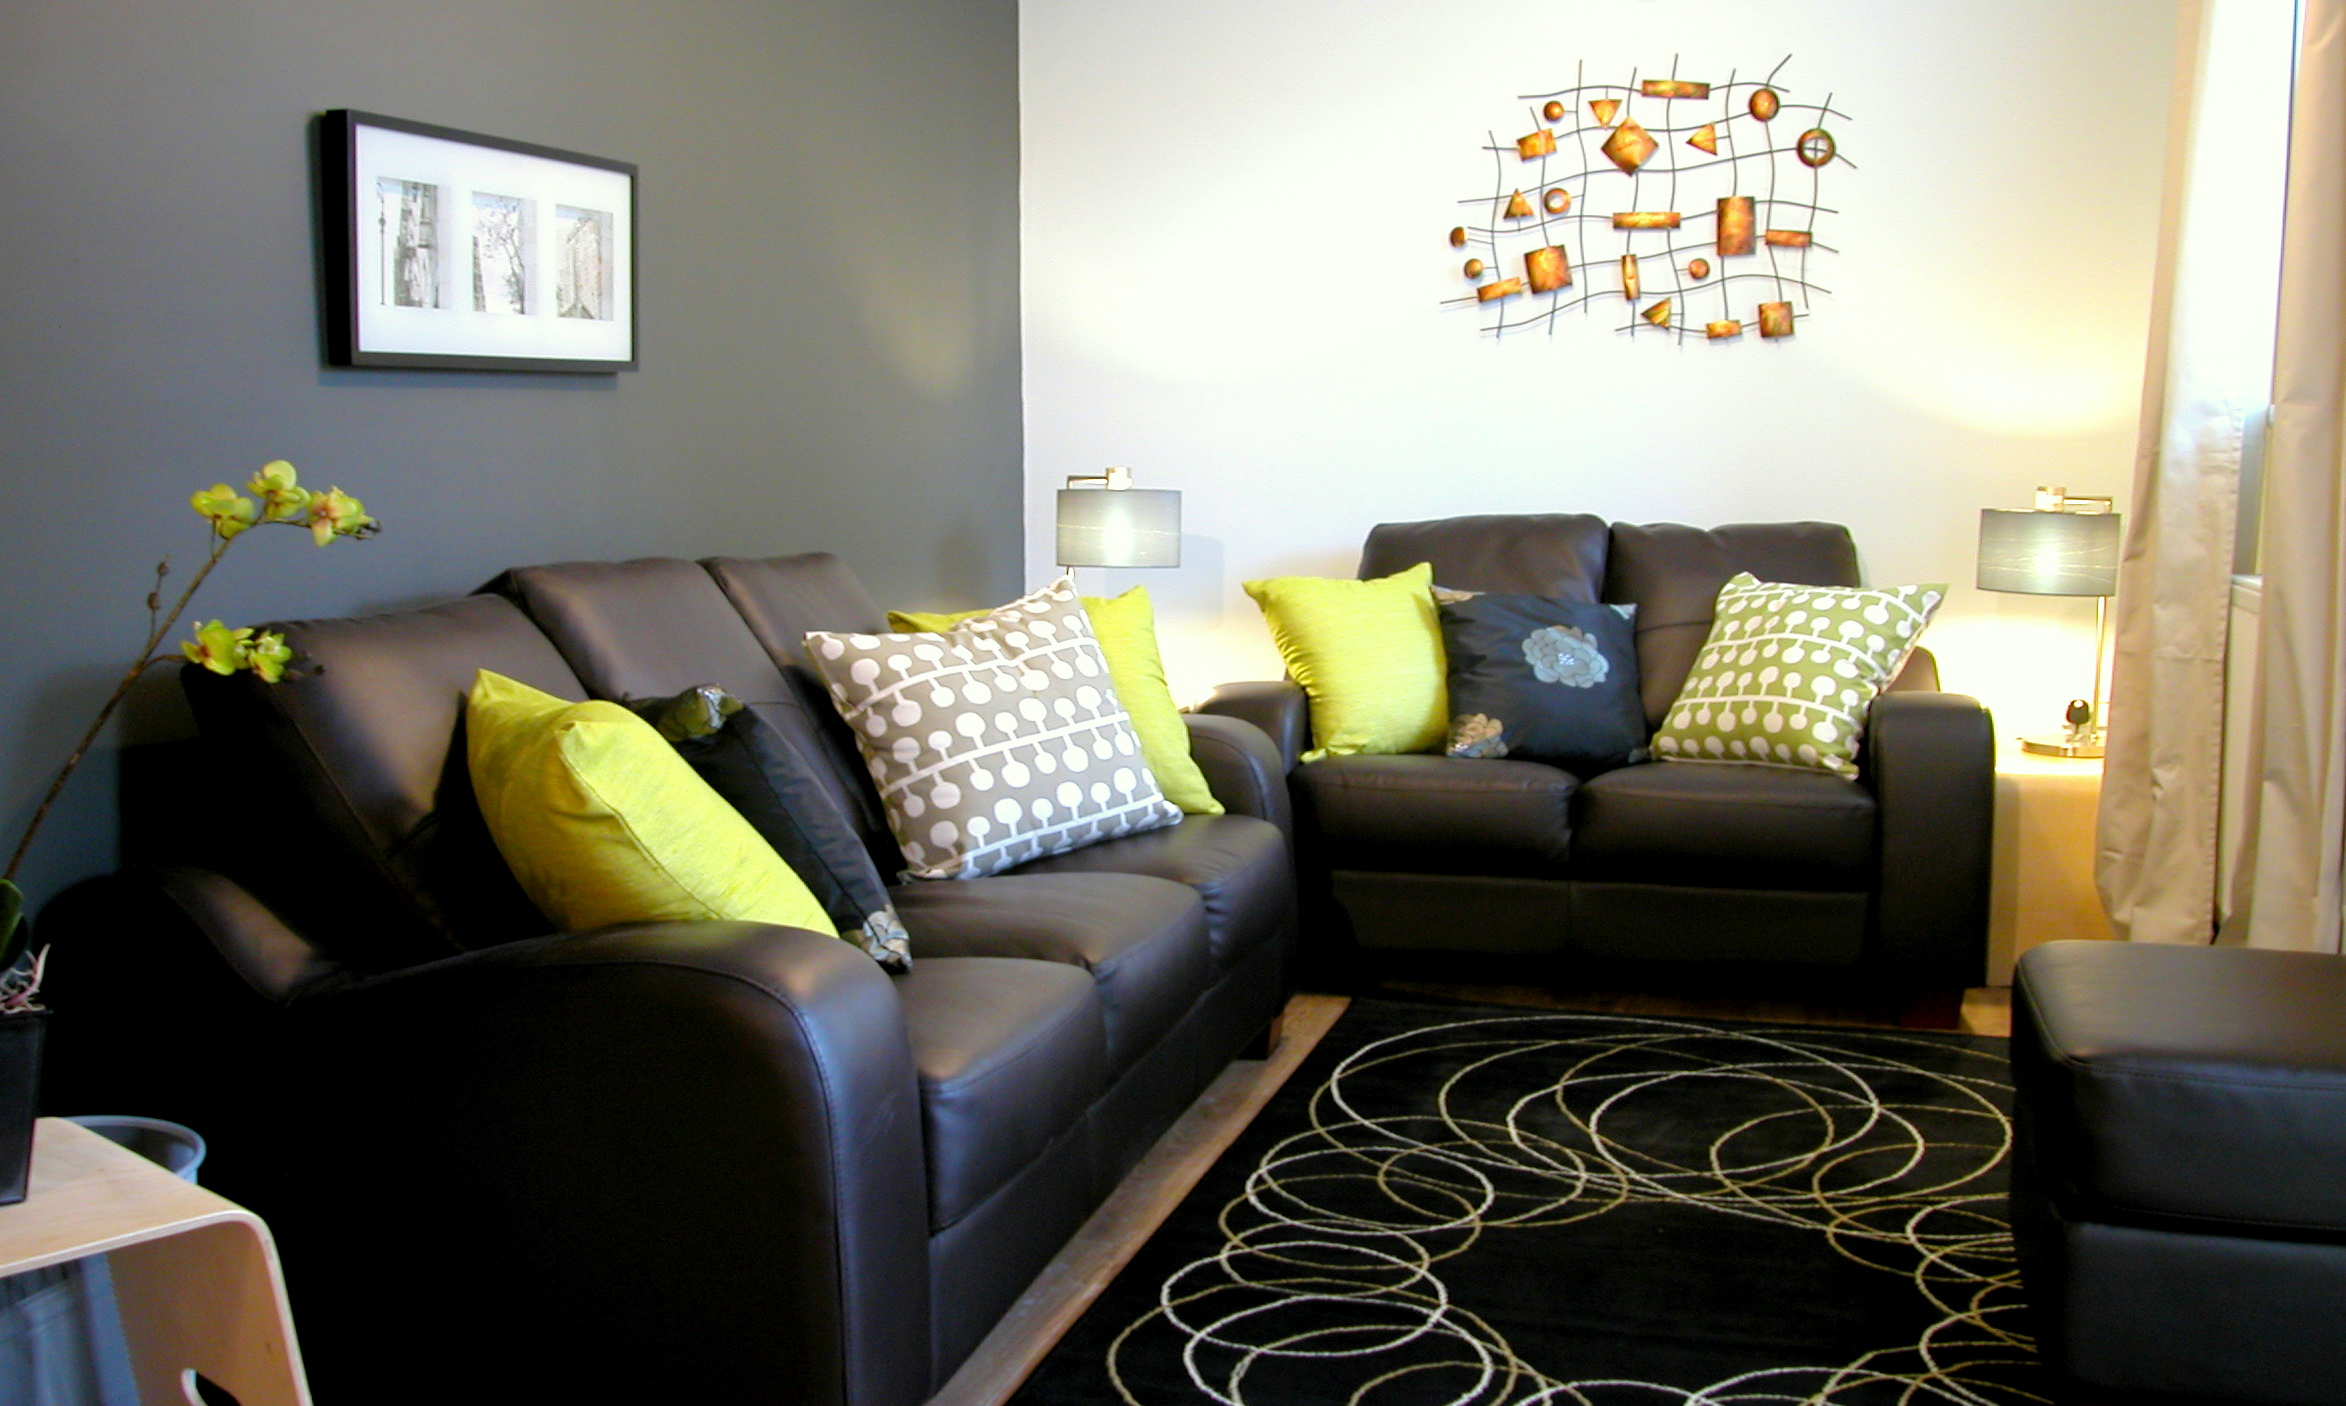 LANDLORDS, HAVE YOU CONSIDERED STYLING TO LET?